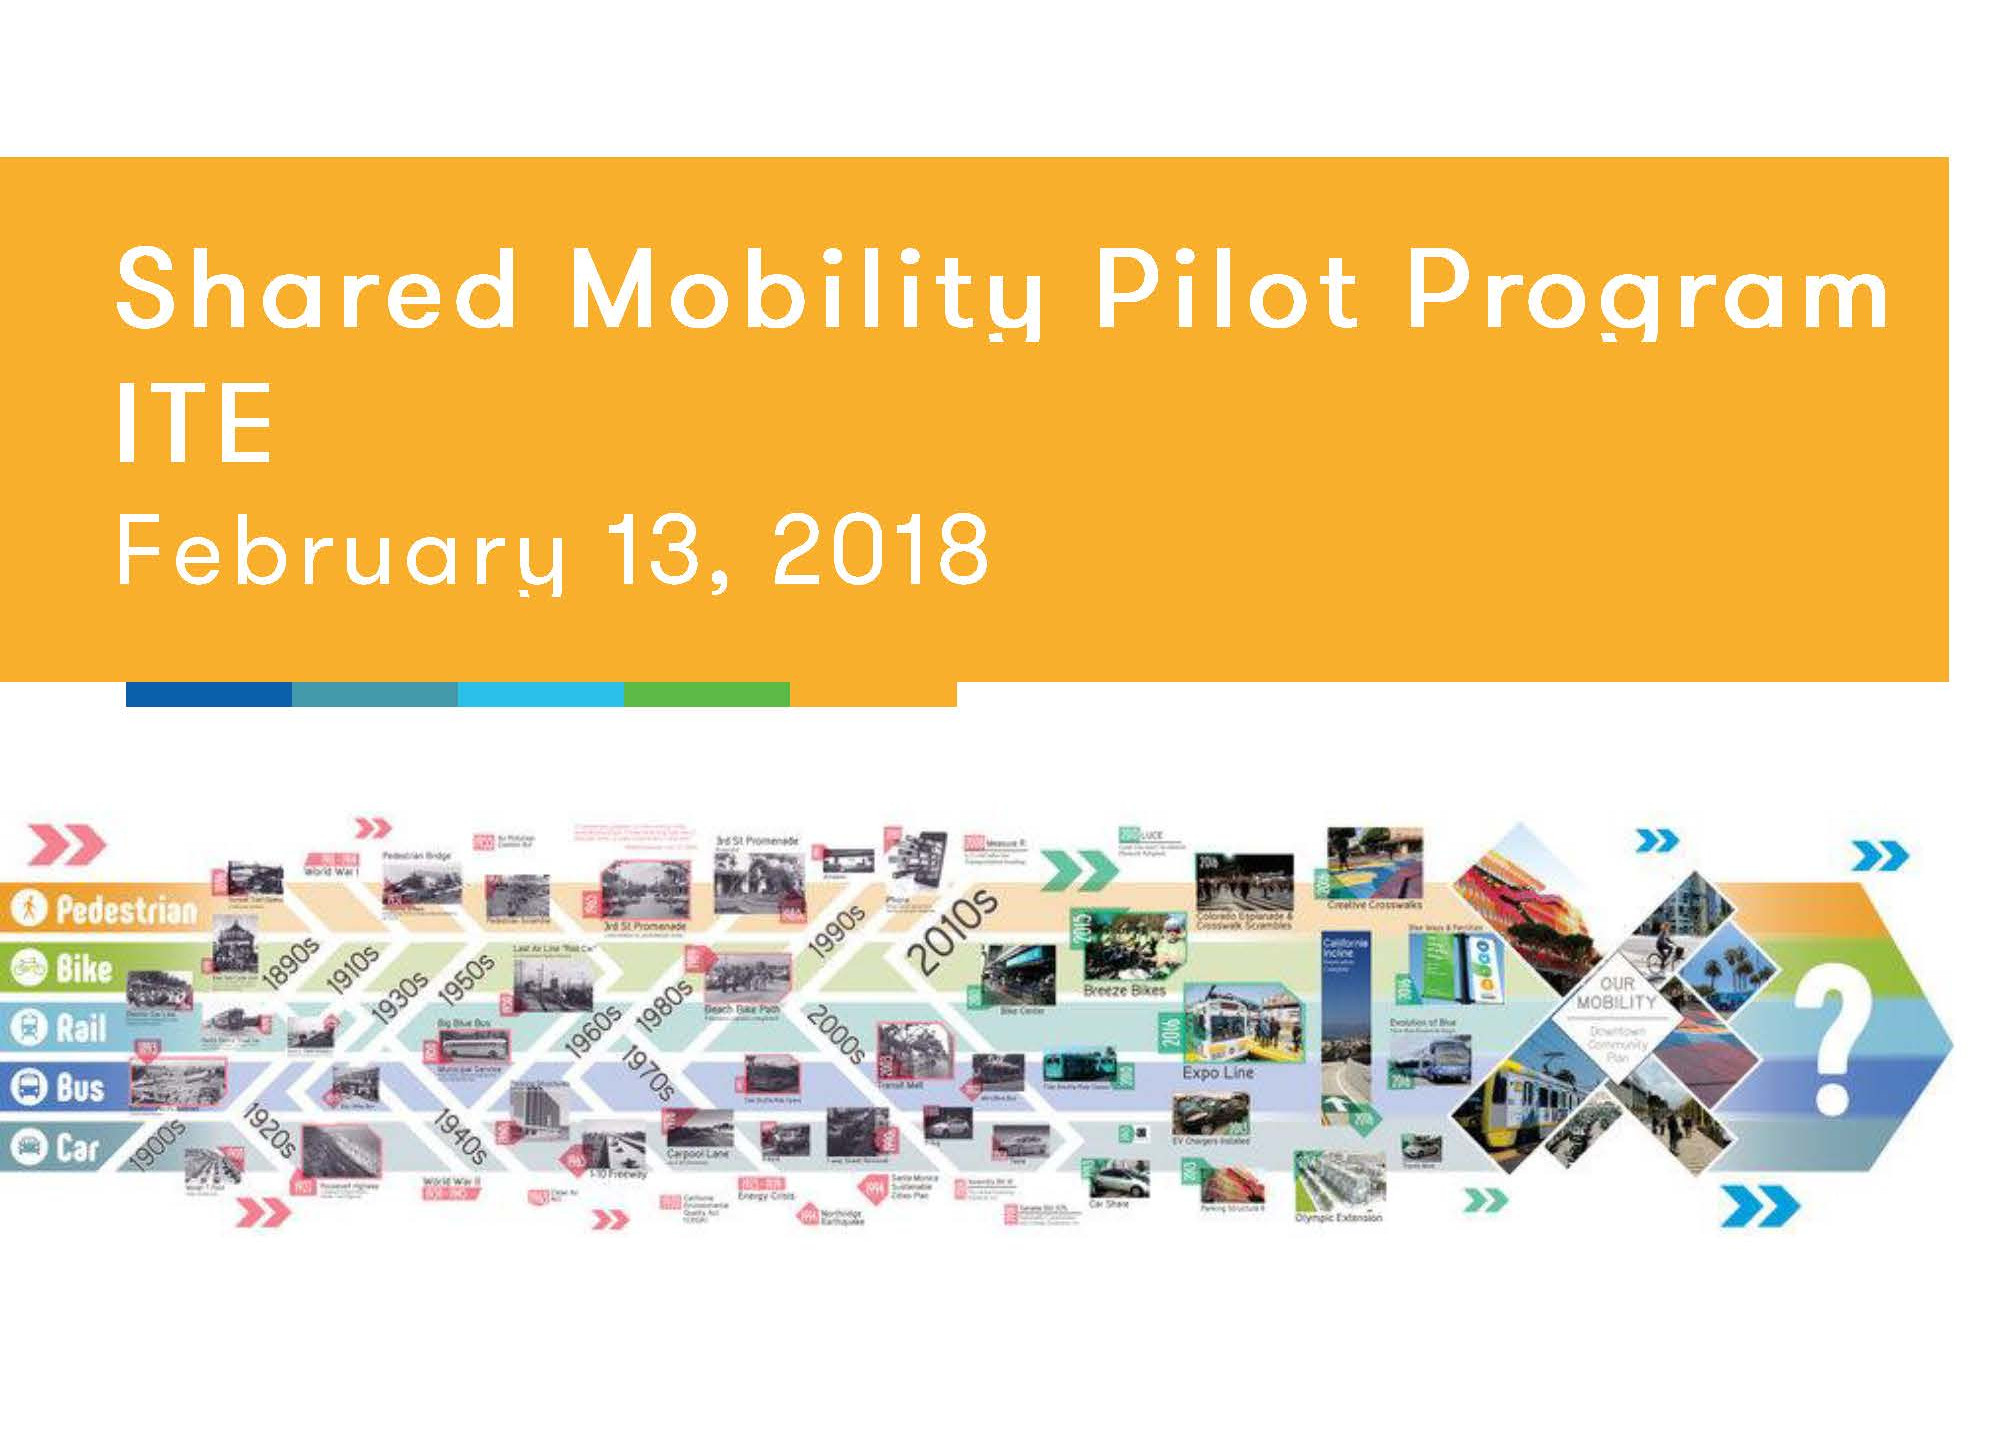 ITE_SharedMobility_20190131_Page_01